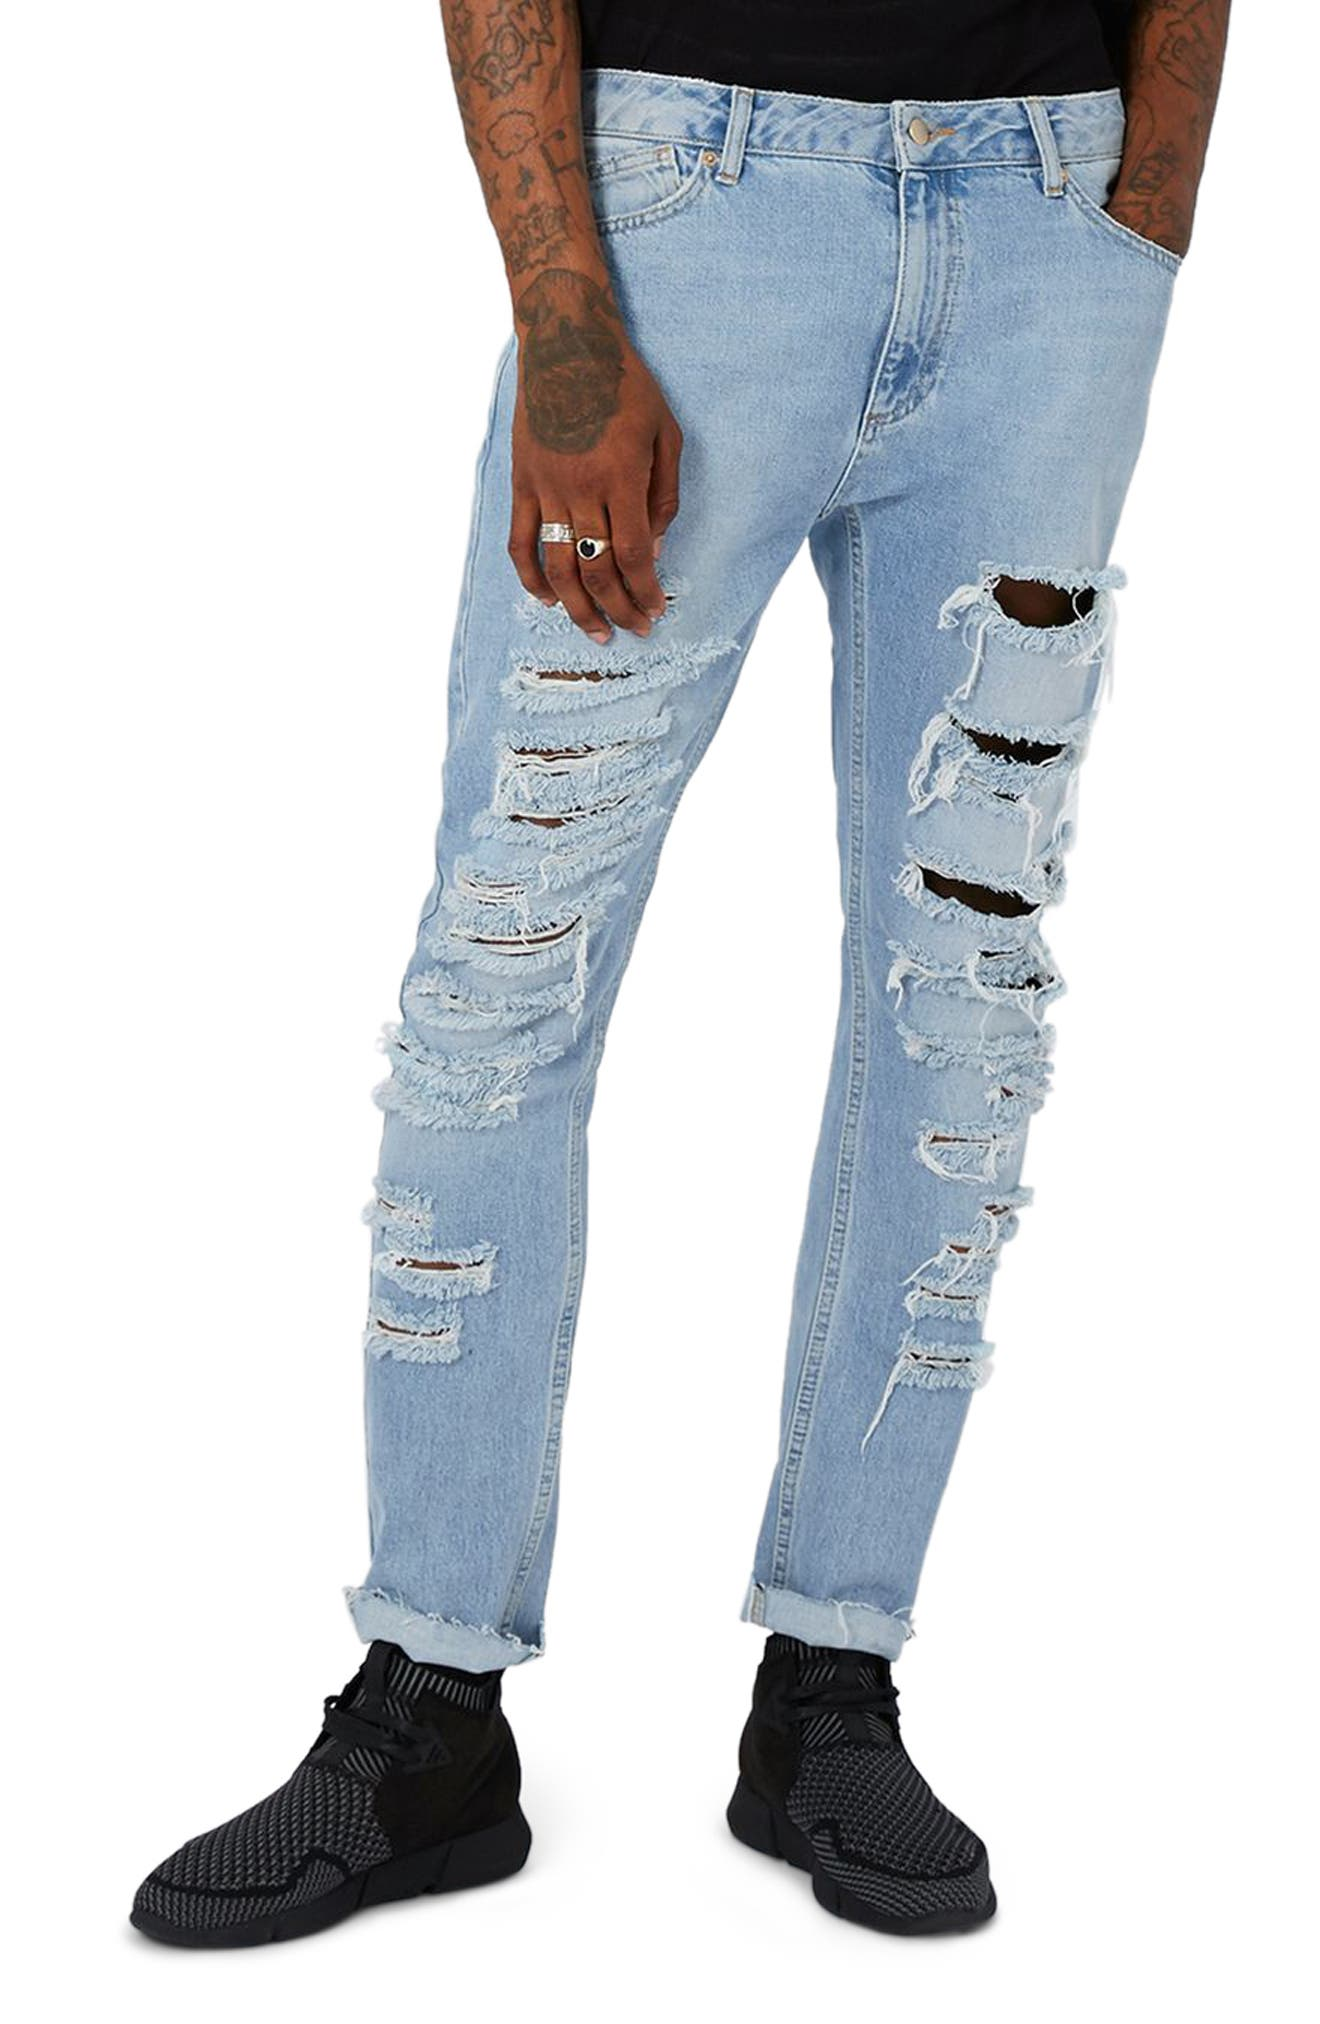 AAA Collection Shredded Skinny Jeans,                         Main,                         color, 400